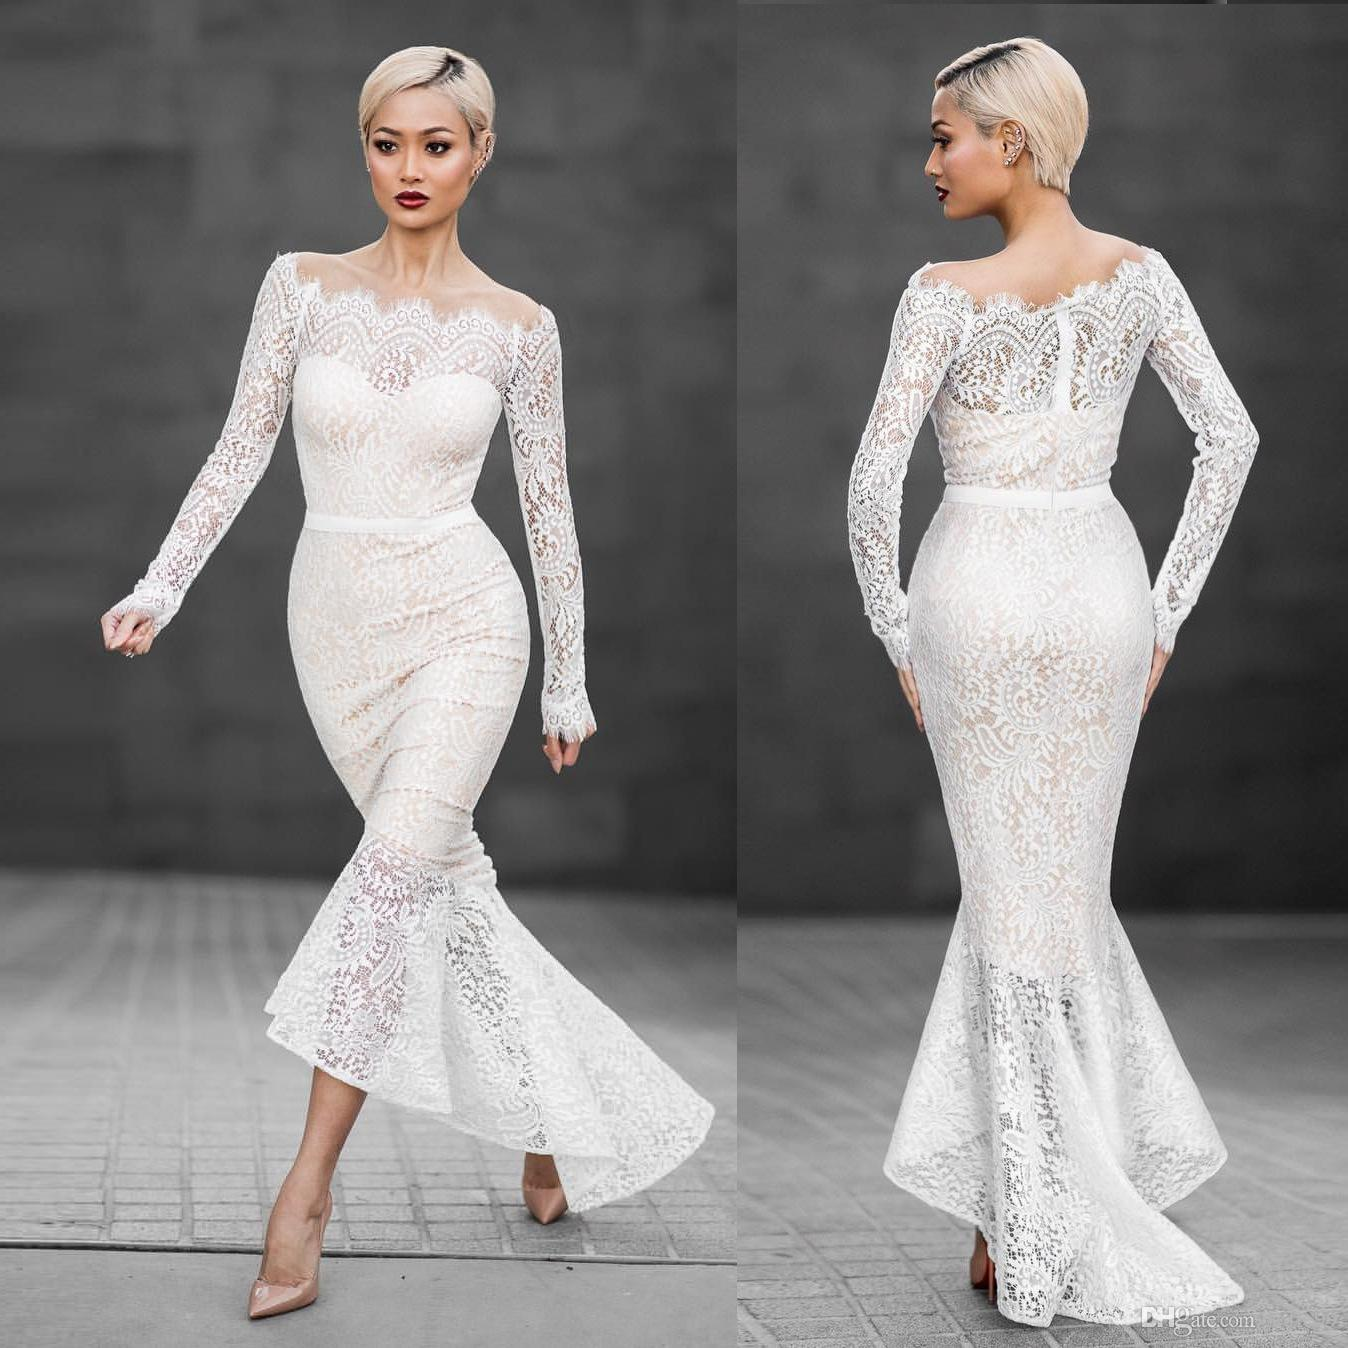 Off Shoulder White Lace Dress Women Long Sleeve Slash Neck Fishtail Elegant  Hollow Out Dinner Party Formal Dress Party Dresses Online with  23.95 Piece  on ... 68ec740020c5